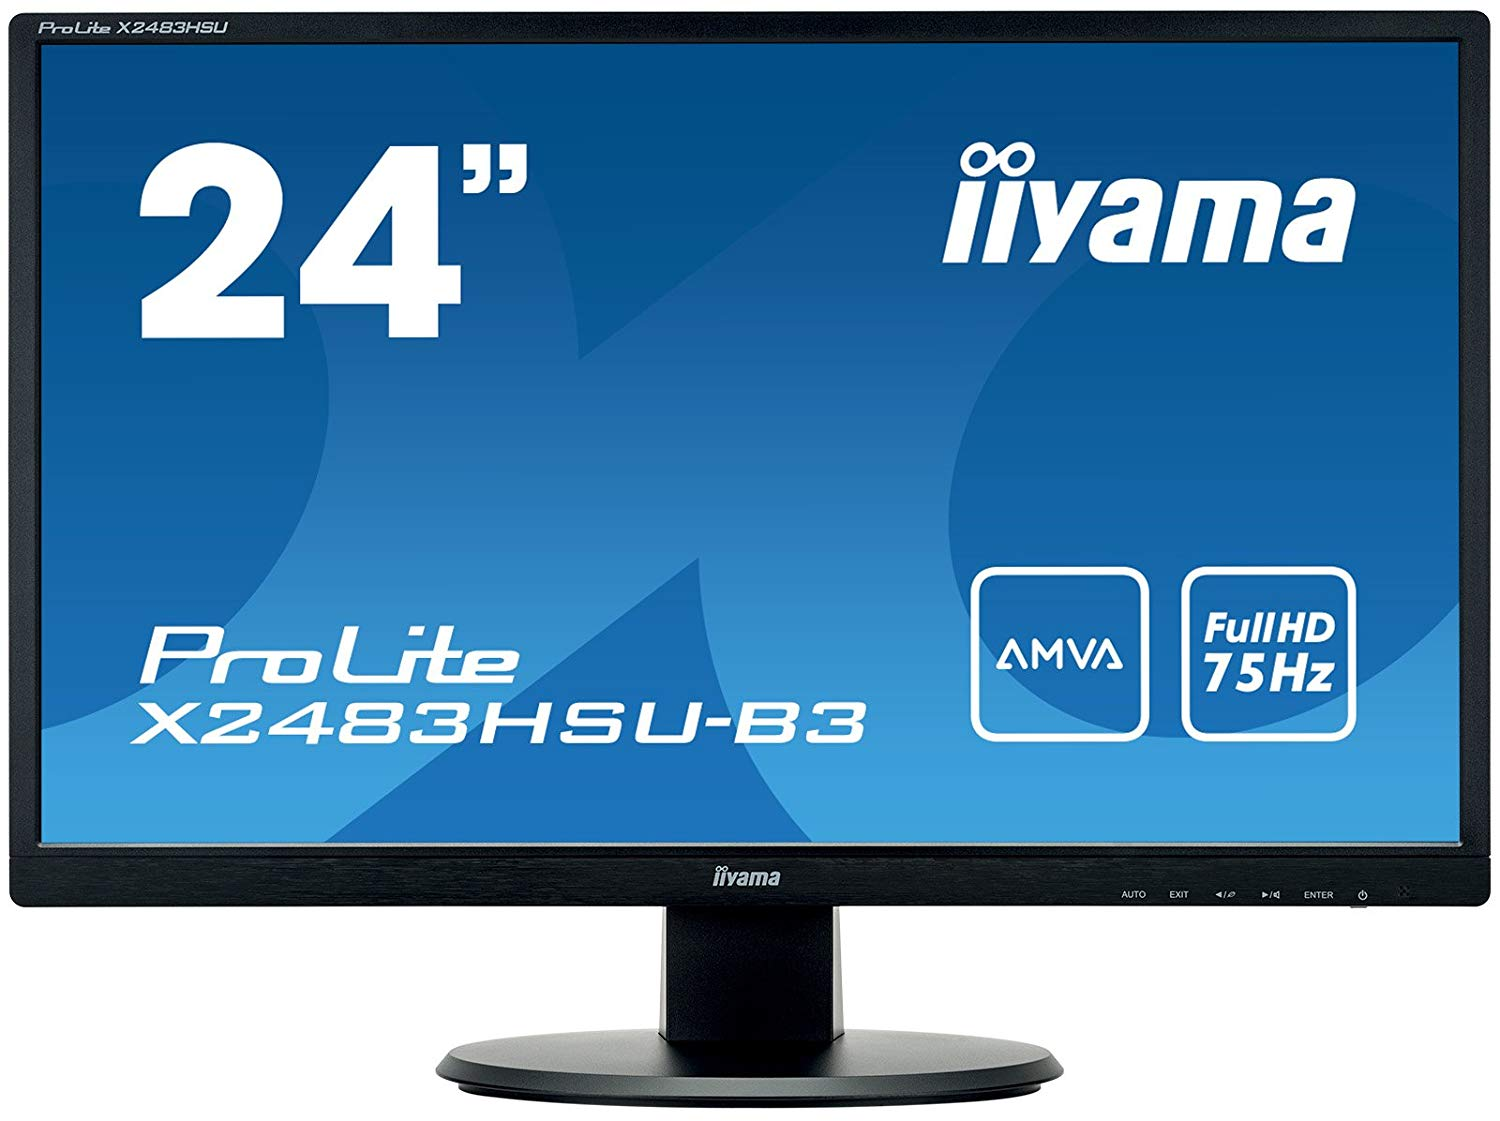 23.8in LED Monitor HD Speakers VGA HDMI